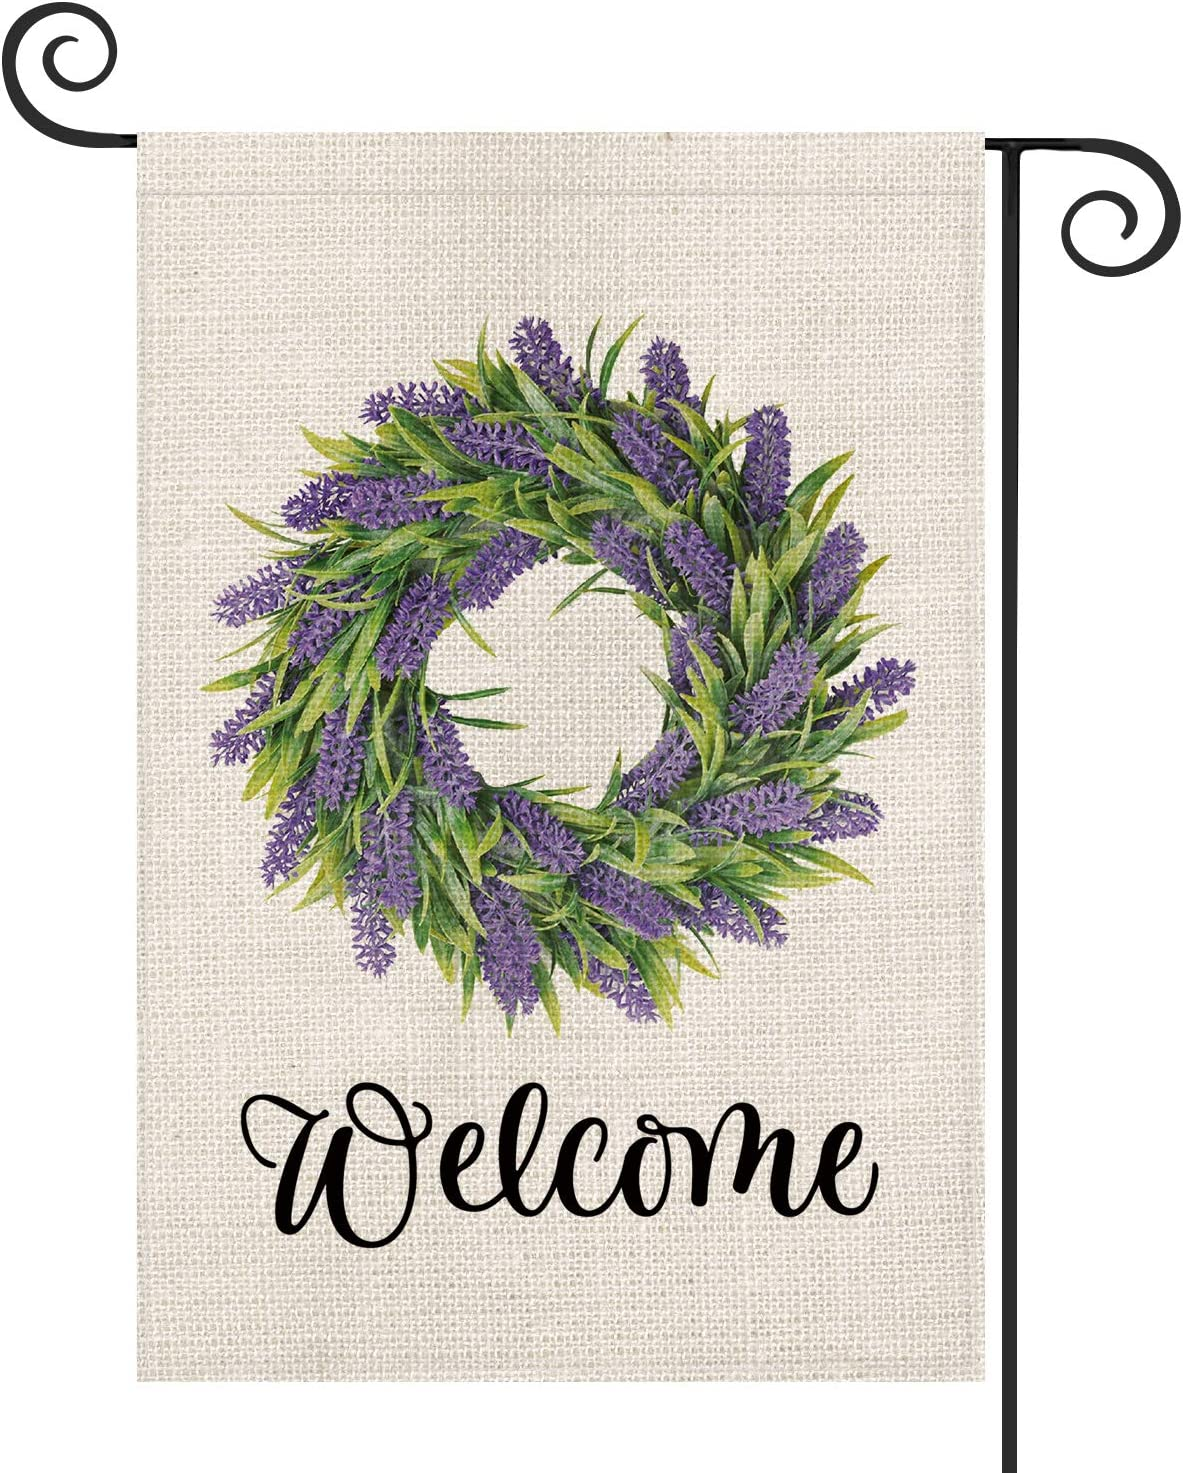 AVOIN Welcome Lavender Wreath Garden Flag Vertical Double Sized, Seasonal Spring Holiday Yard Outdoor Decoration 12.5 x 18 Inch